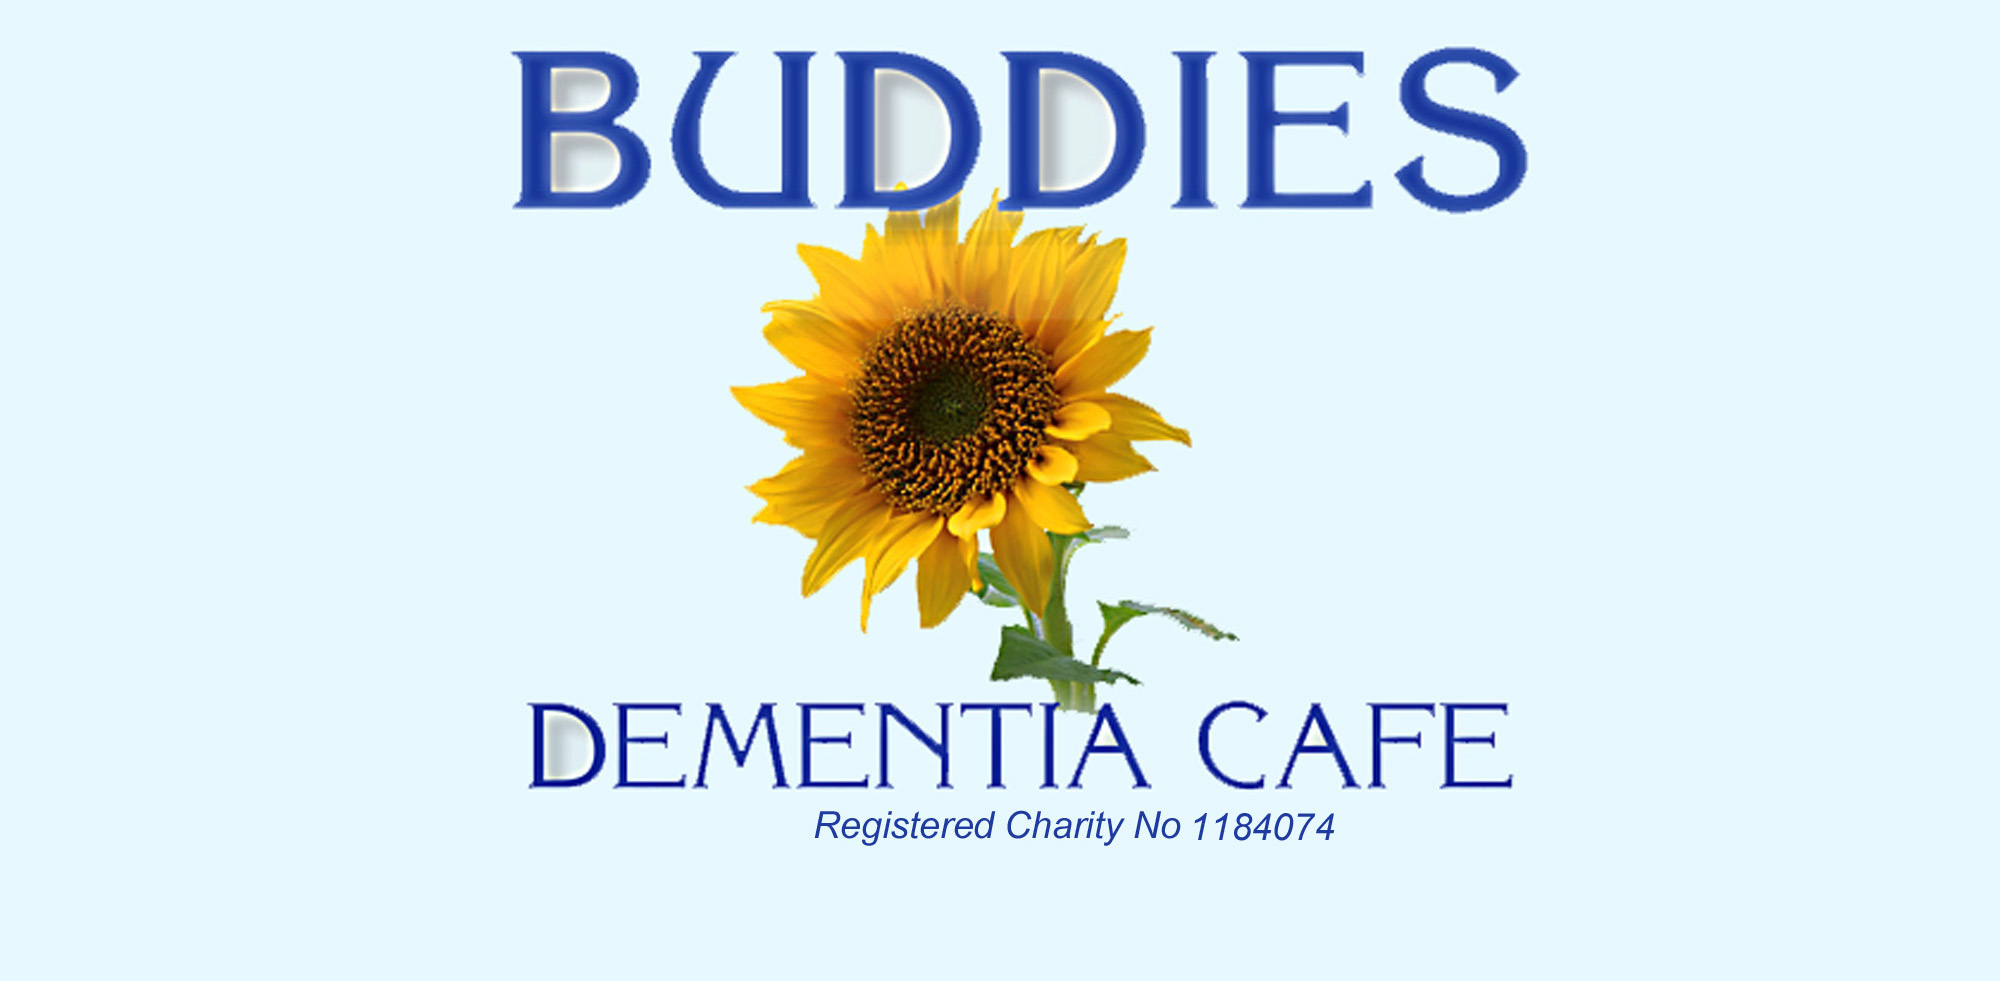 Buddies Dementia Cafe